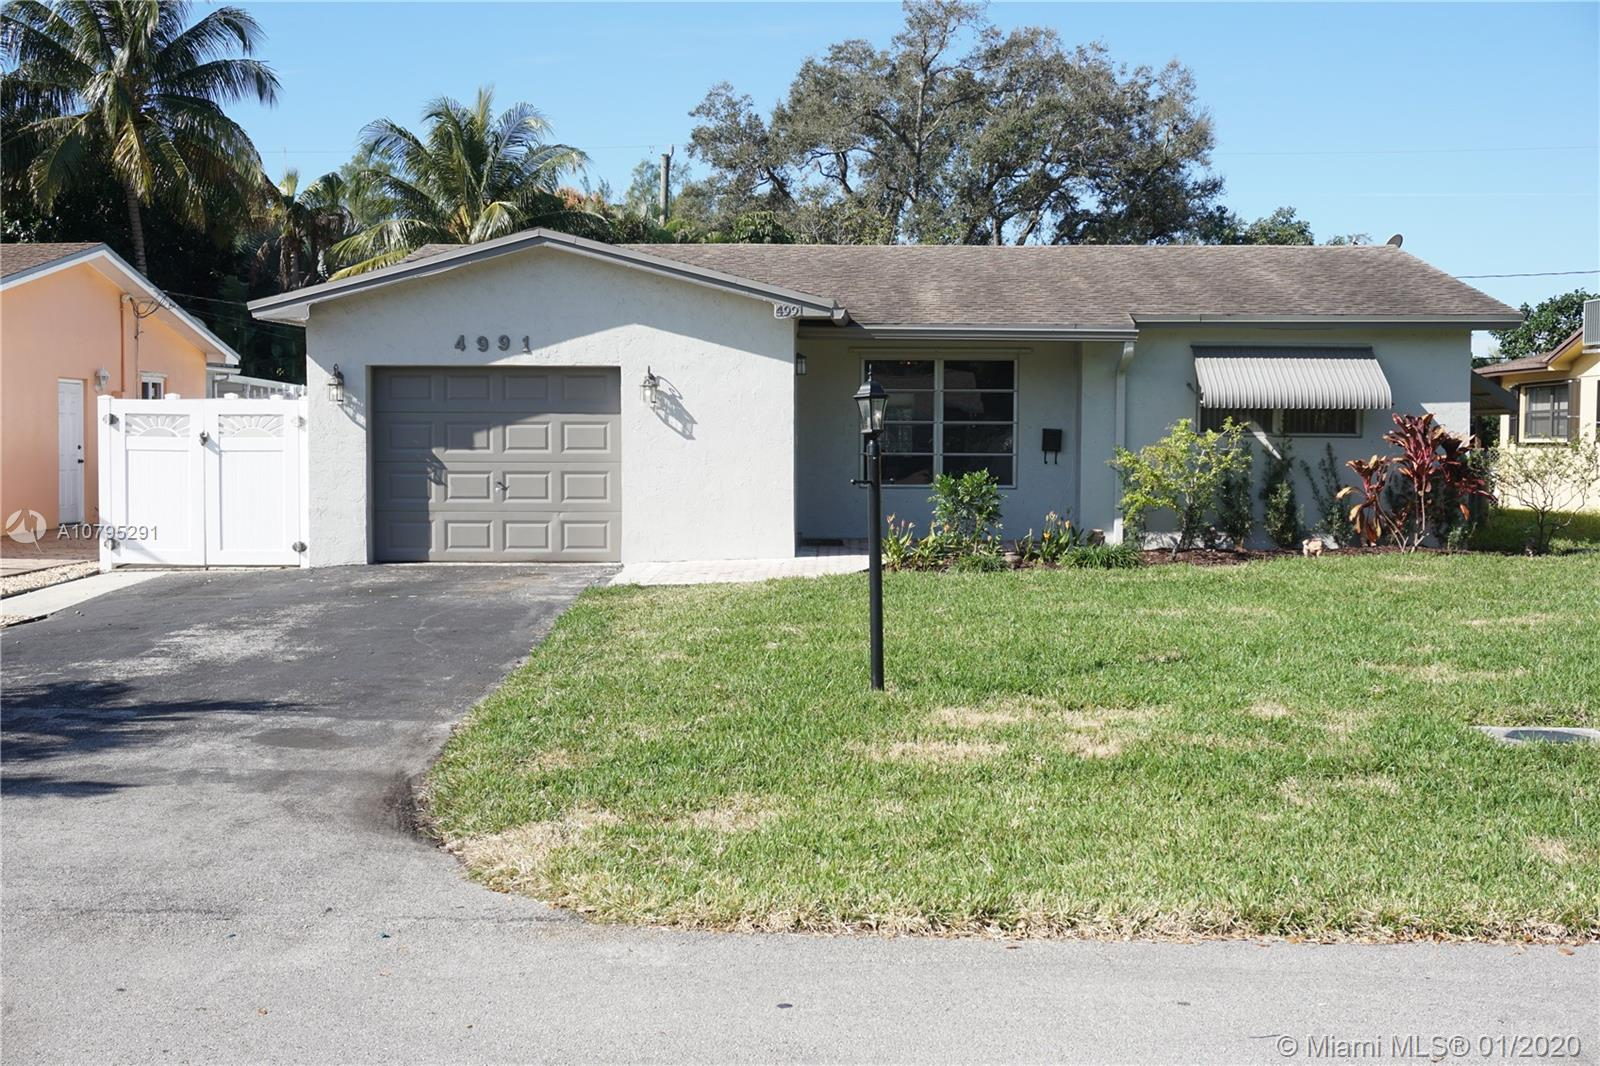 Excellent location! This cozy 3/2 home is situated in a quiet, family-oriented neighborhood. Located near I-95, 595, & the Turnpike. It's close to the beaches, the new Dania Pointe Center, Seminole Hardrock Casino, Ft. Lauderdale Airport, & a short walk to Patrick J. Meli Park. This house has everything you want! It has beautiful custom cabinets with plenty of storage space, granite countertop, & an open seating area. It's carpeted in the bedrooms, tiled throughout living areas, & it has a very spacious family room with view to the pool. A new roof with extended warranty was installed in 2007, a new 3.5 ton AC was installed in 2015, & it has PVC fencing. Play or grill around the huge yard or relax sunbathing & enjoying the pool. NO ASSOCIATION FEES!